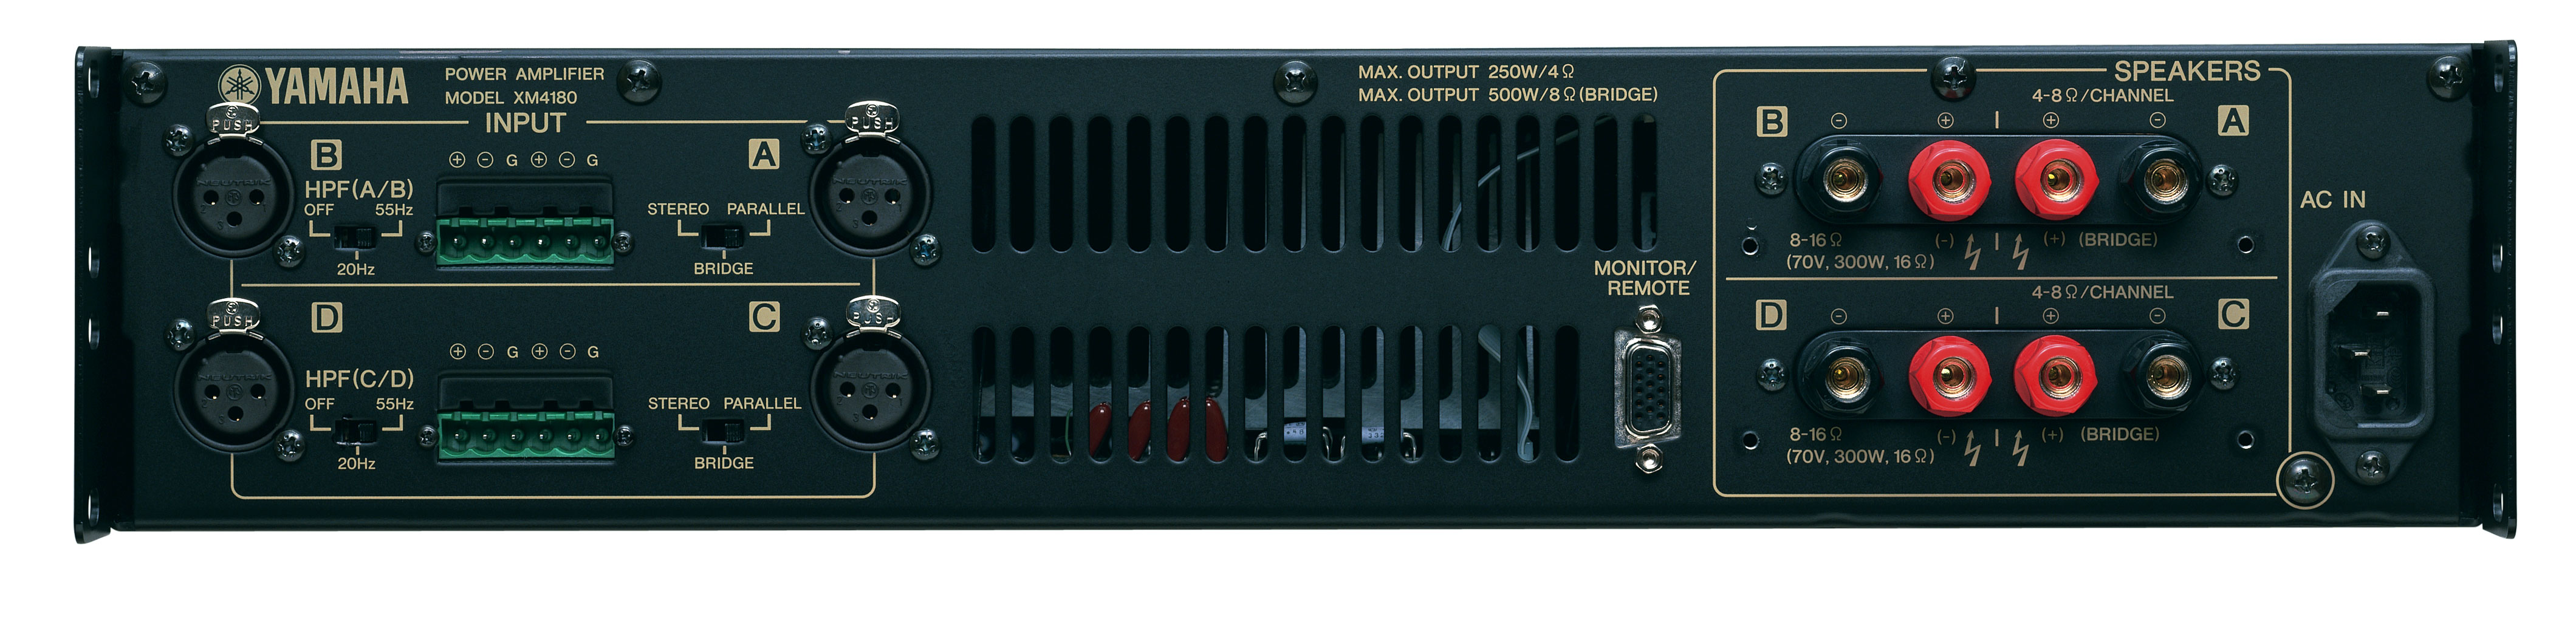 Yamaha xm s rie pro music s r o for Yamaha commercial audio